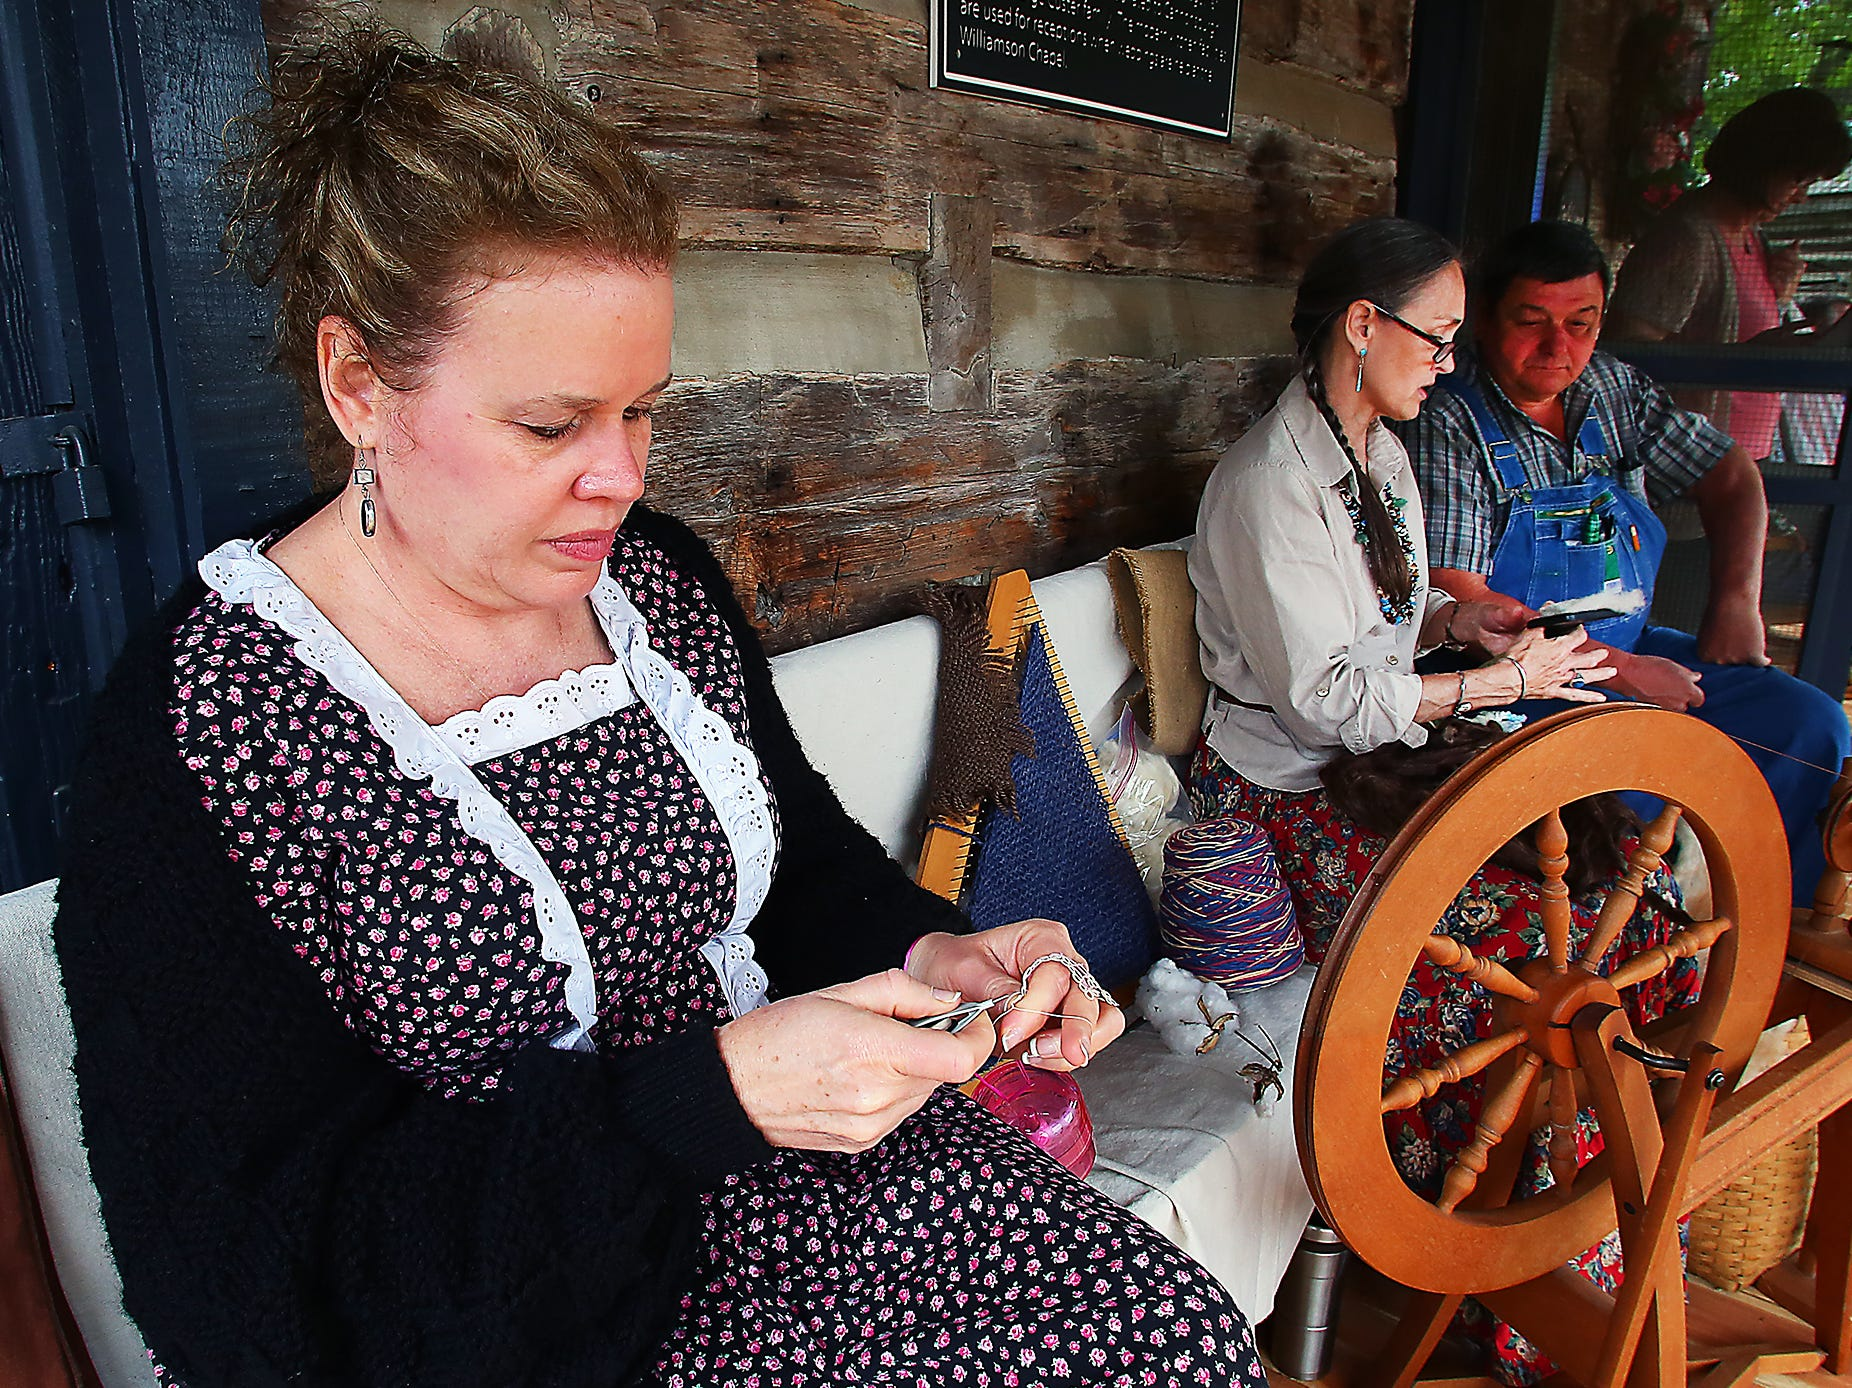 Fiber arts are featured at Cannonsburgh Village at the annual Pioneer Days.